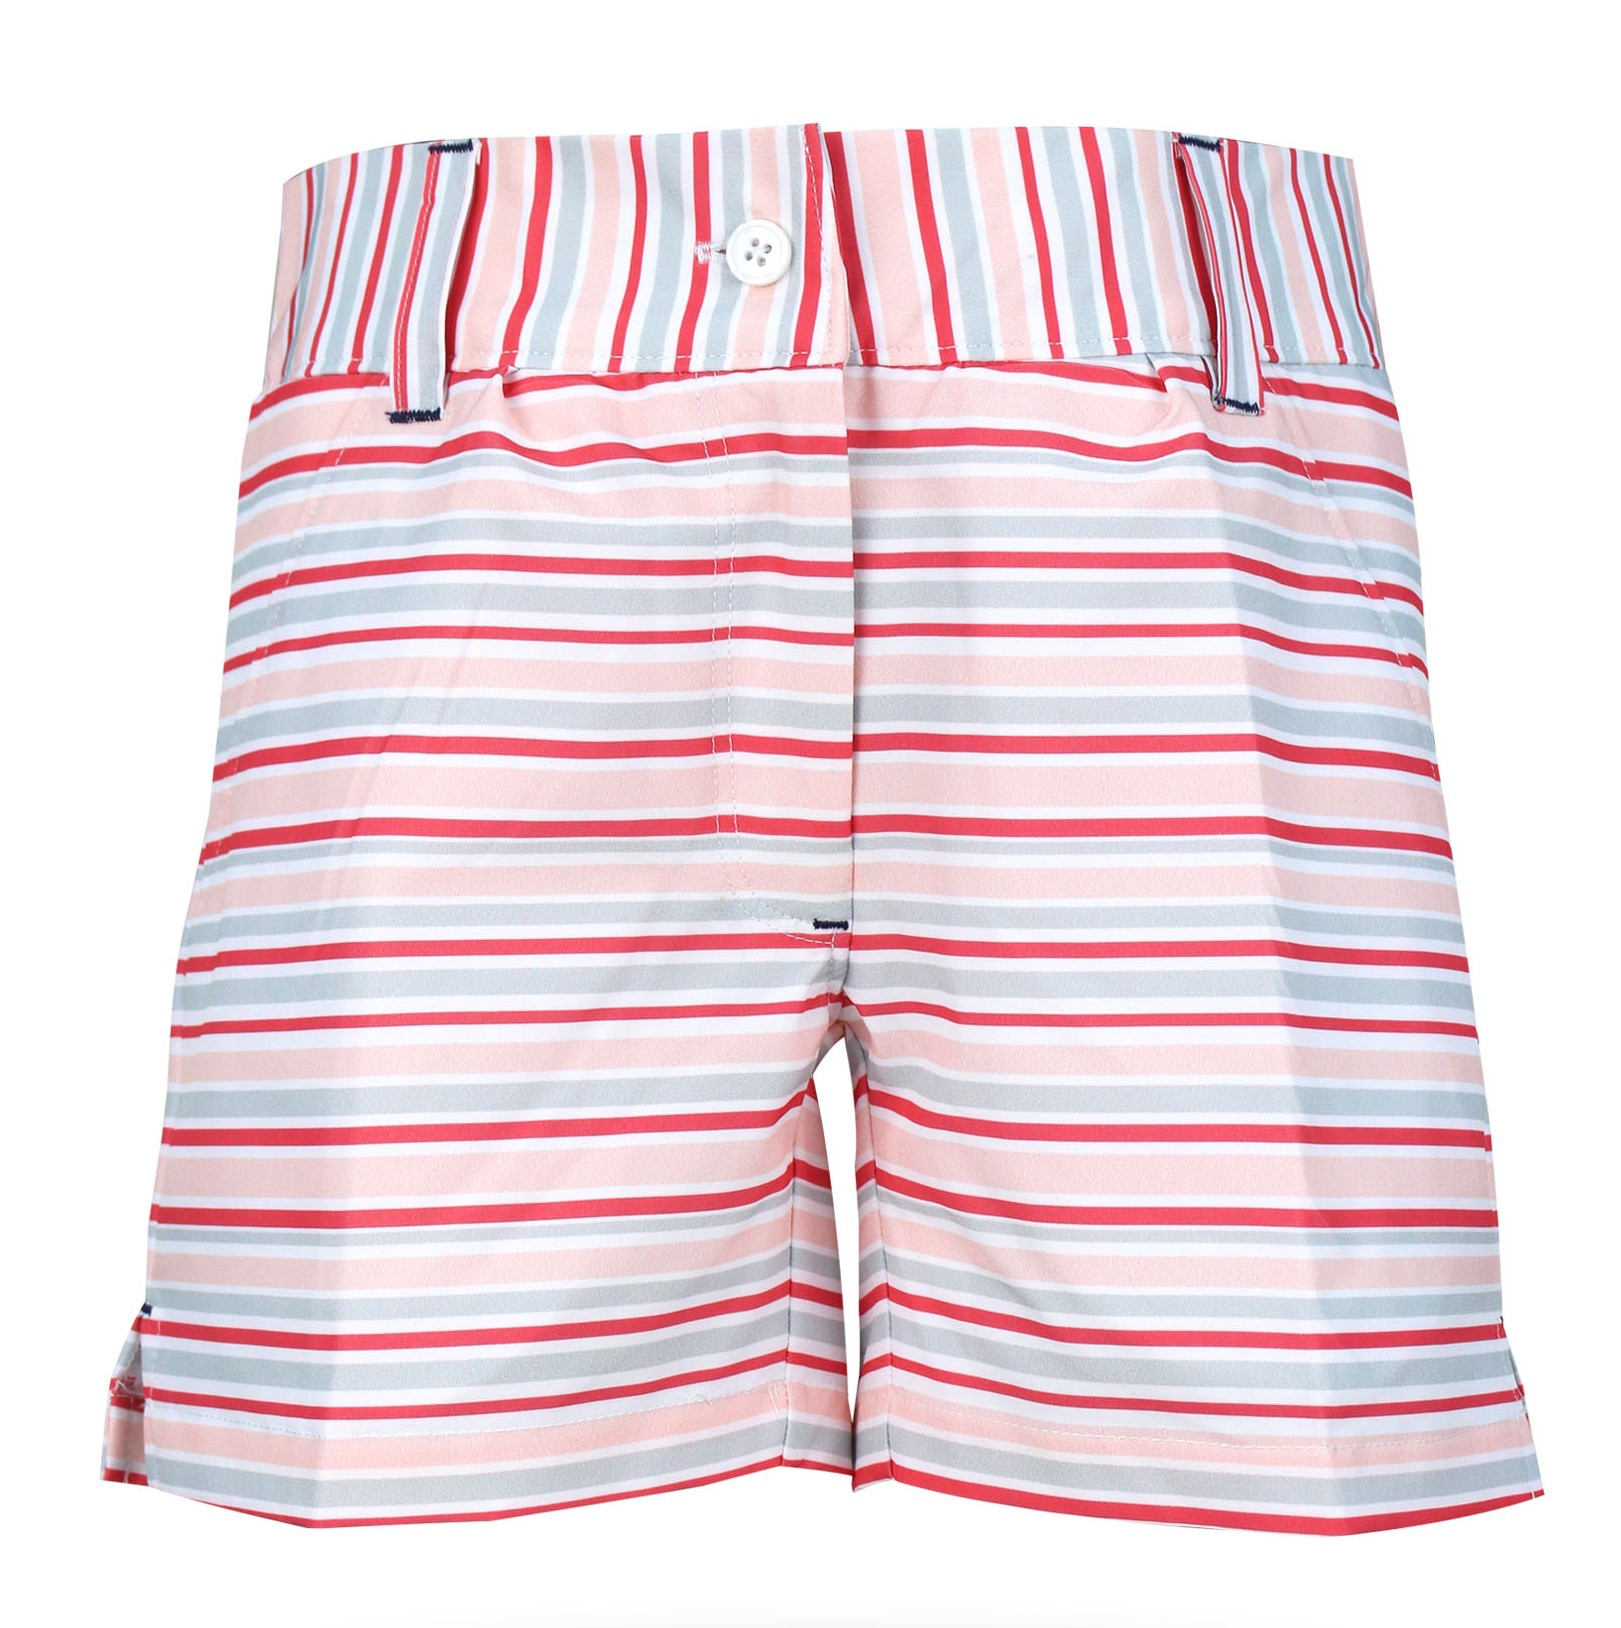 Kira Girls Golf & Tennis Shorts in Pink Stripe